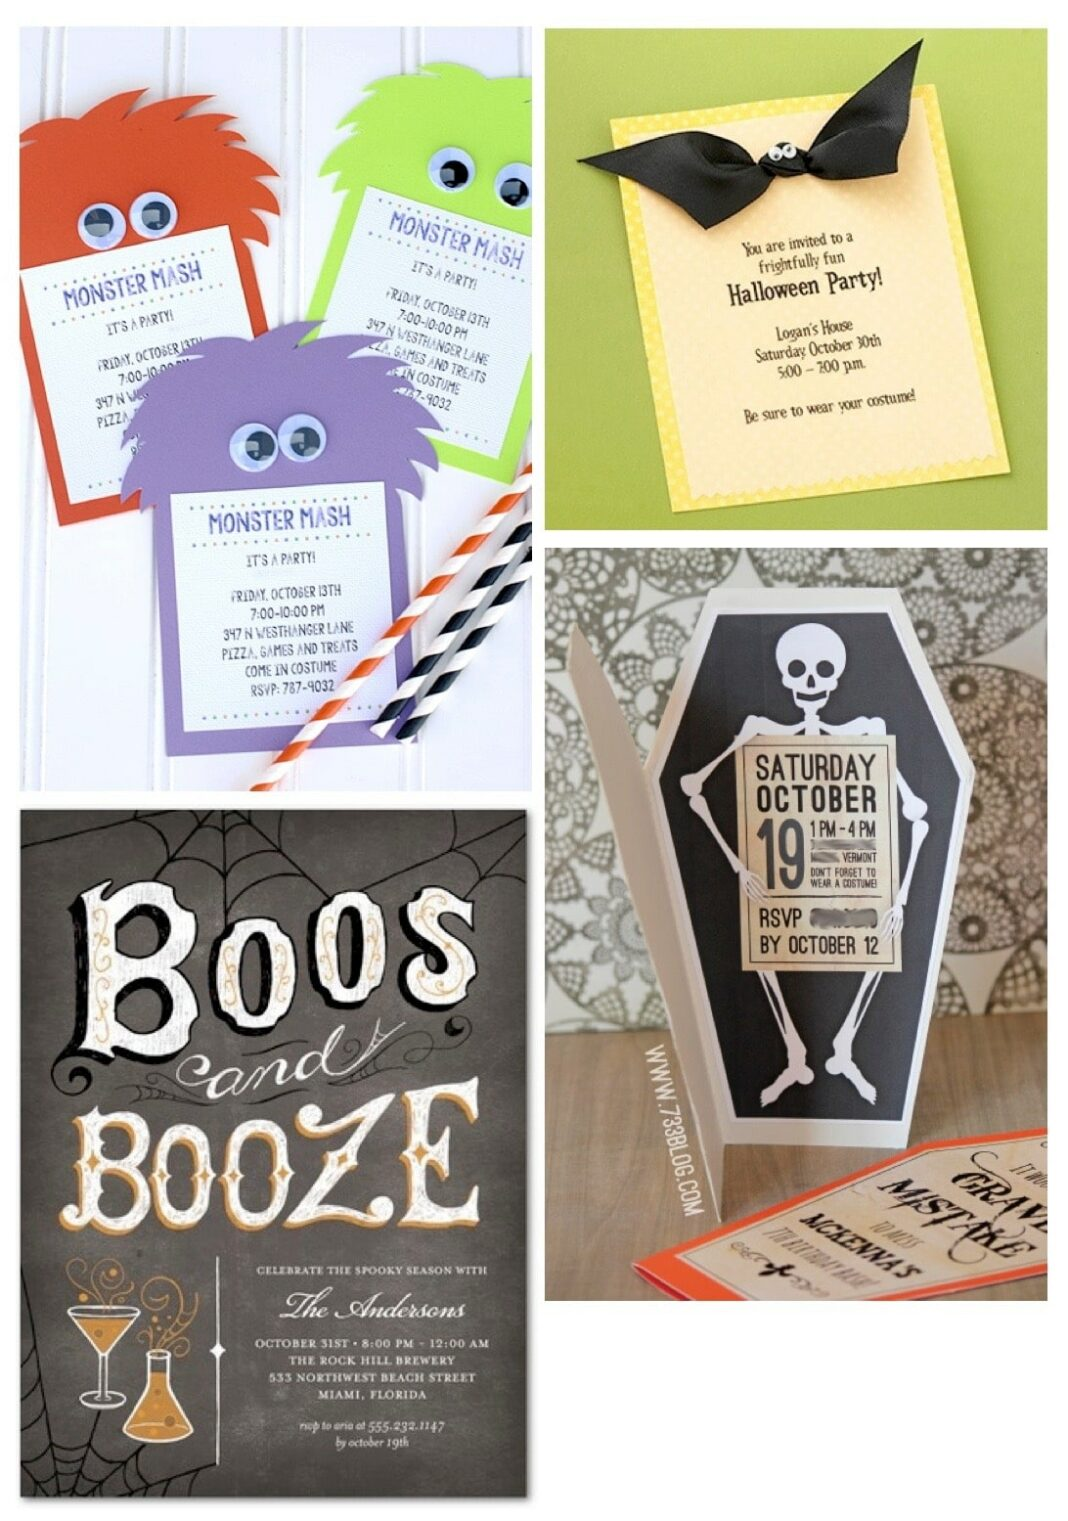 10 Tips for Throwing Your Best Halloween Party Yet | The Zumper Blog